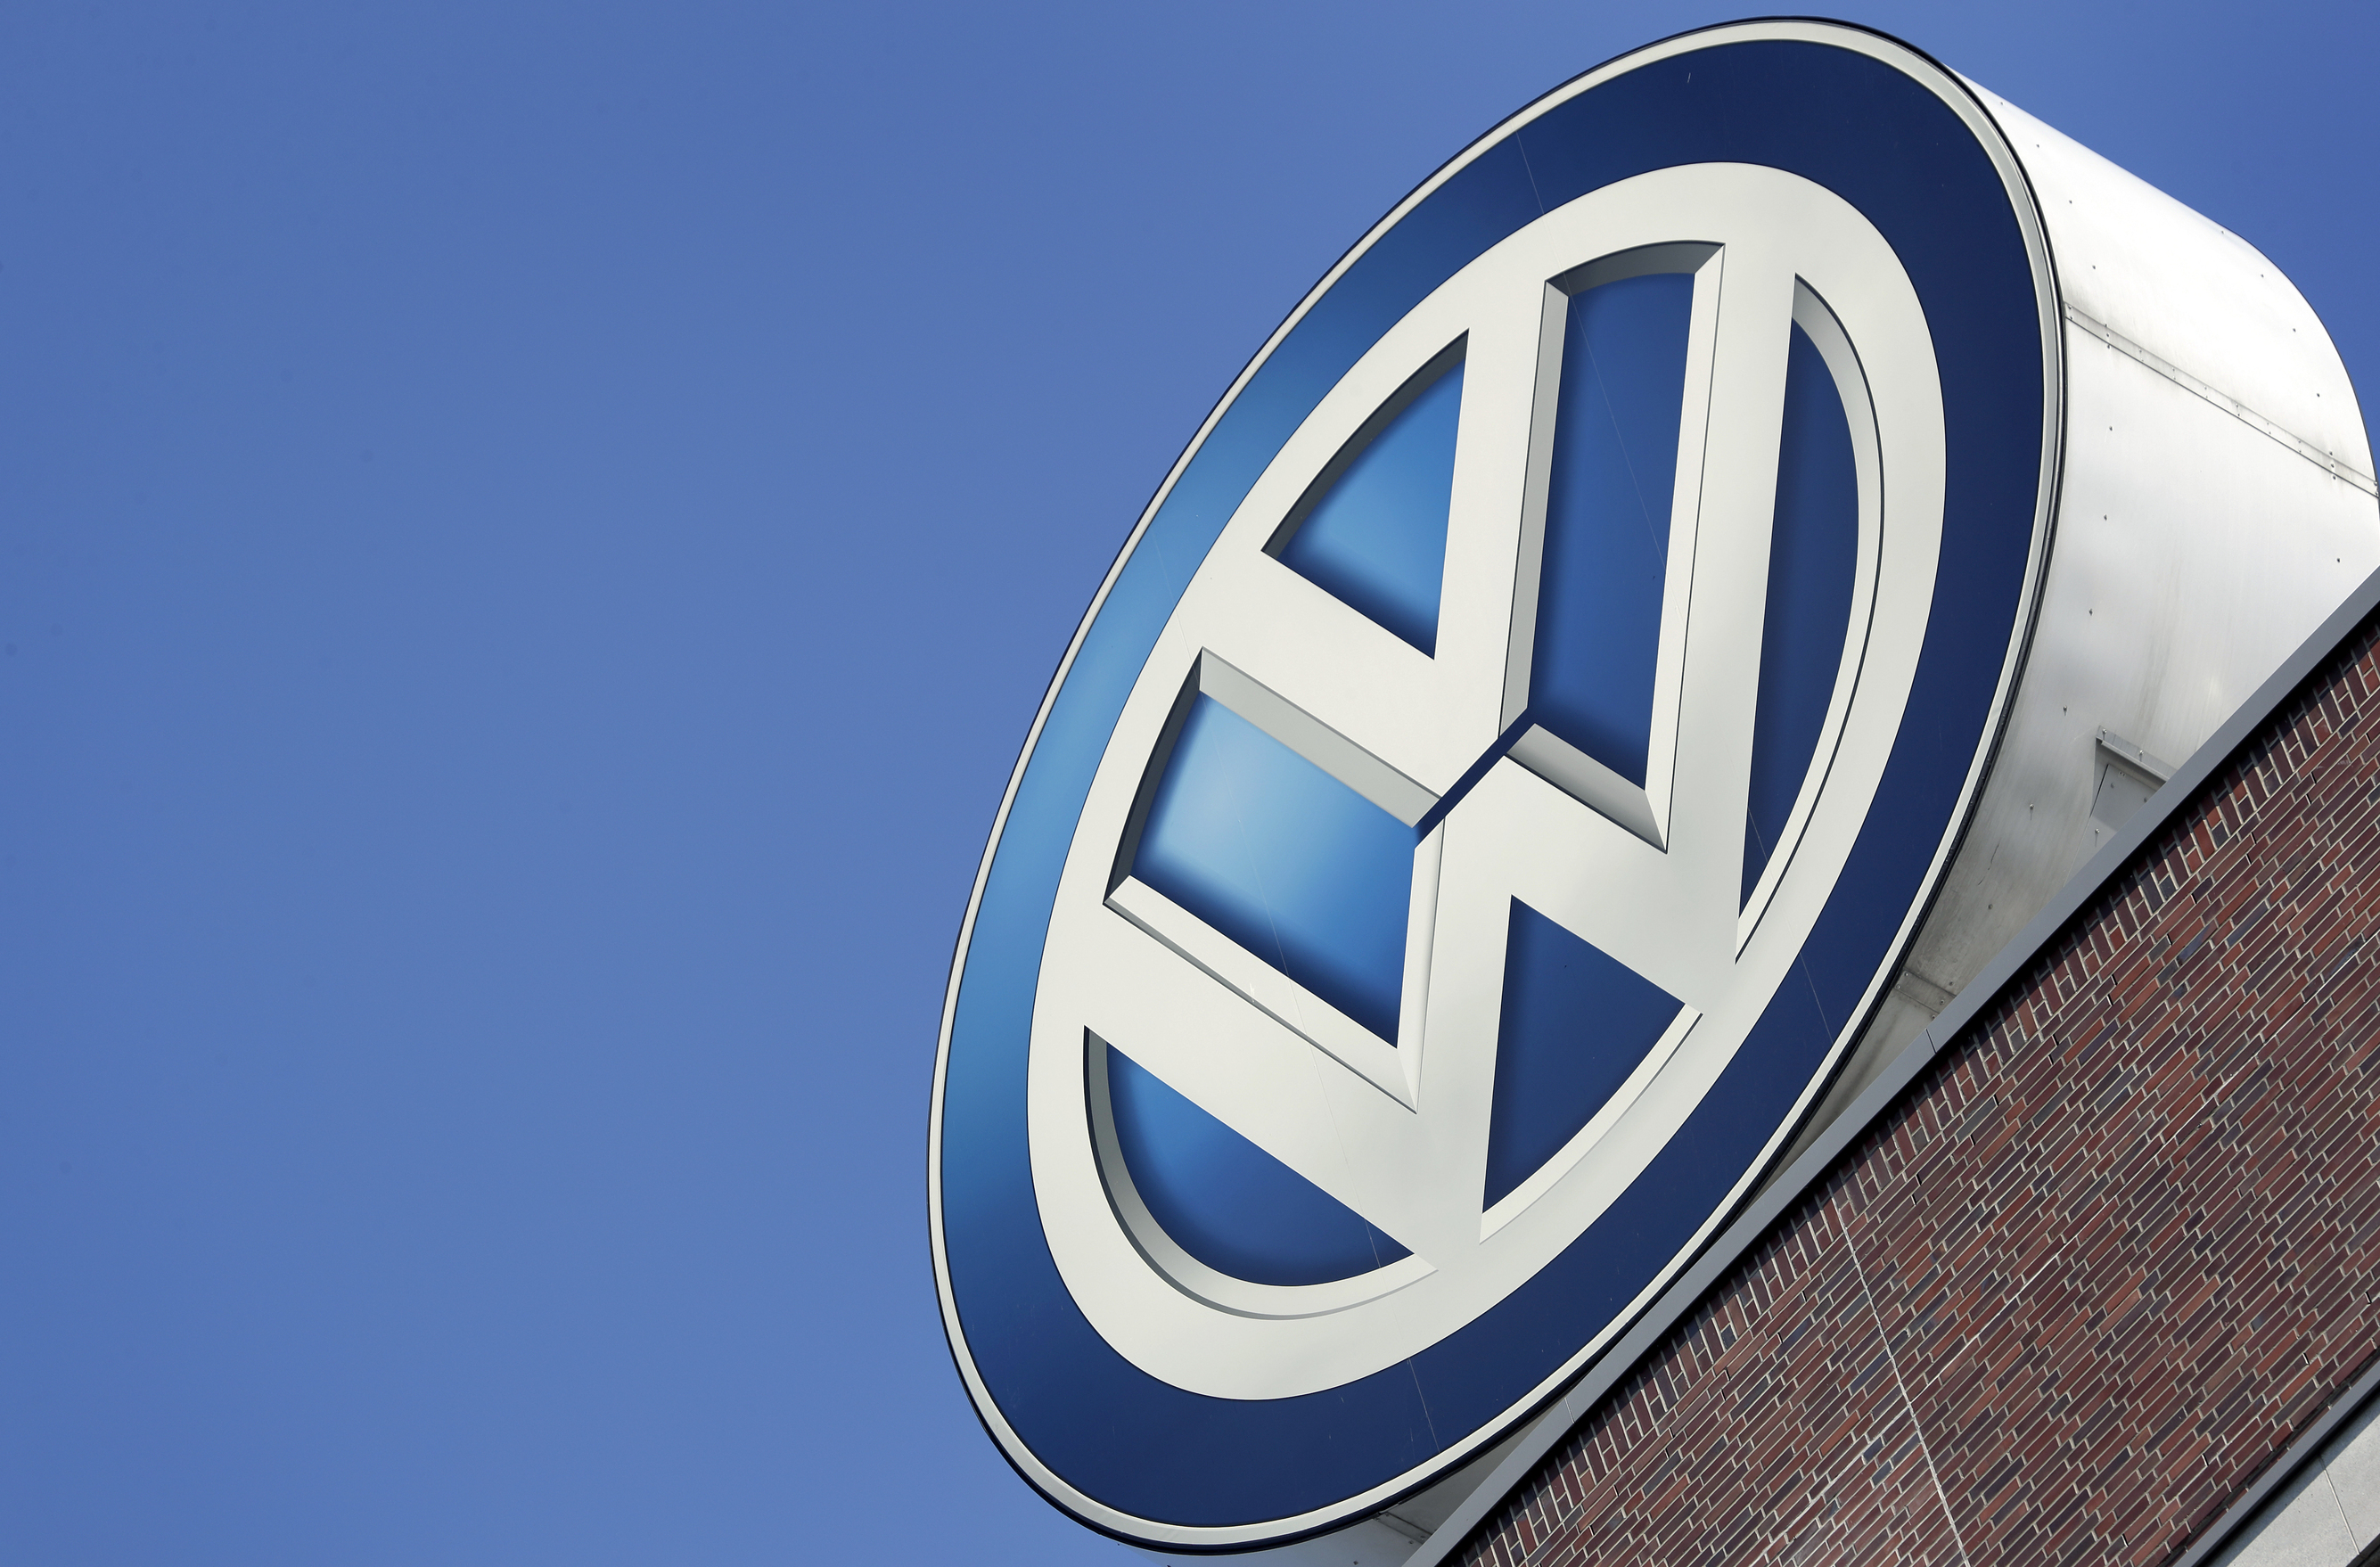 In this Wednesday, Aug. 1, 2018 file photo, the logo of Volkswagen is seen on top of a company building in Wolfsburg, Germany.